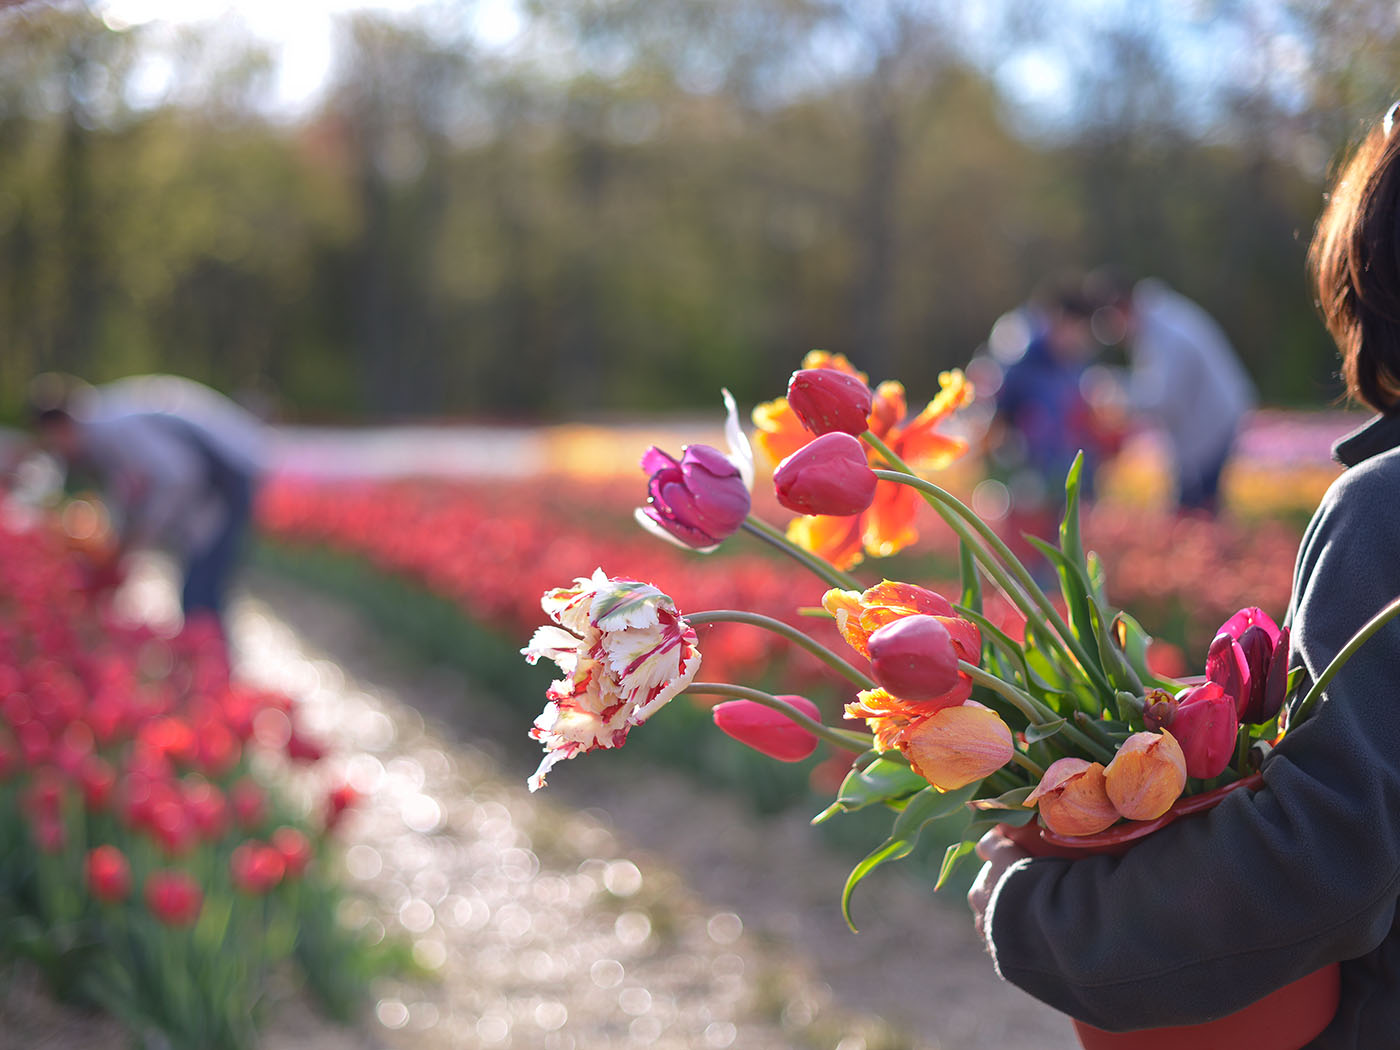 American Tulip Day Is Almost Here and We're Ready to Celebrate